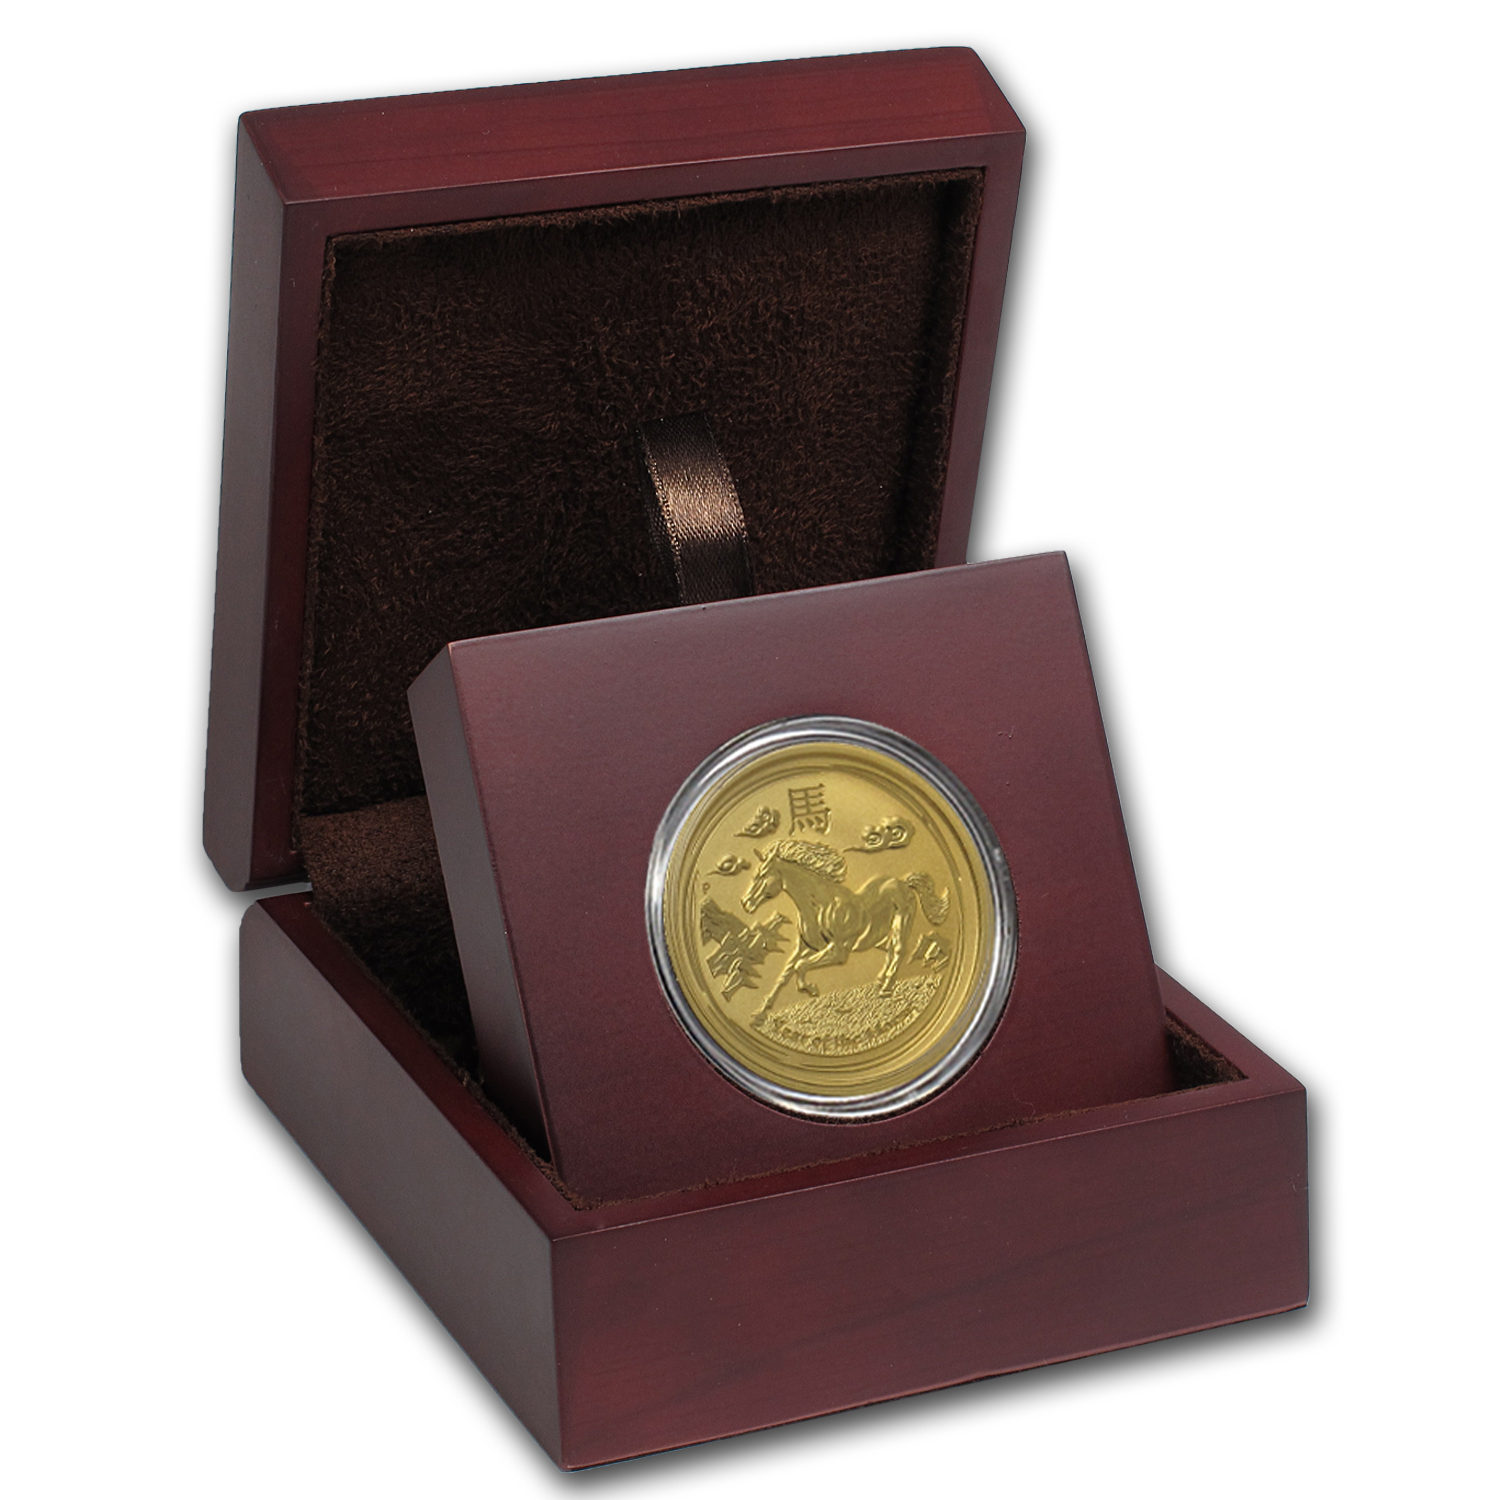 APMEX Wood Gift Box - 1 oz Perth Mint Gold Coin Series 2